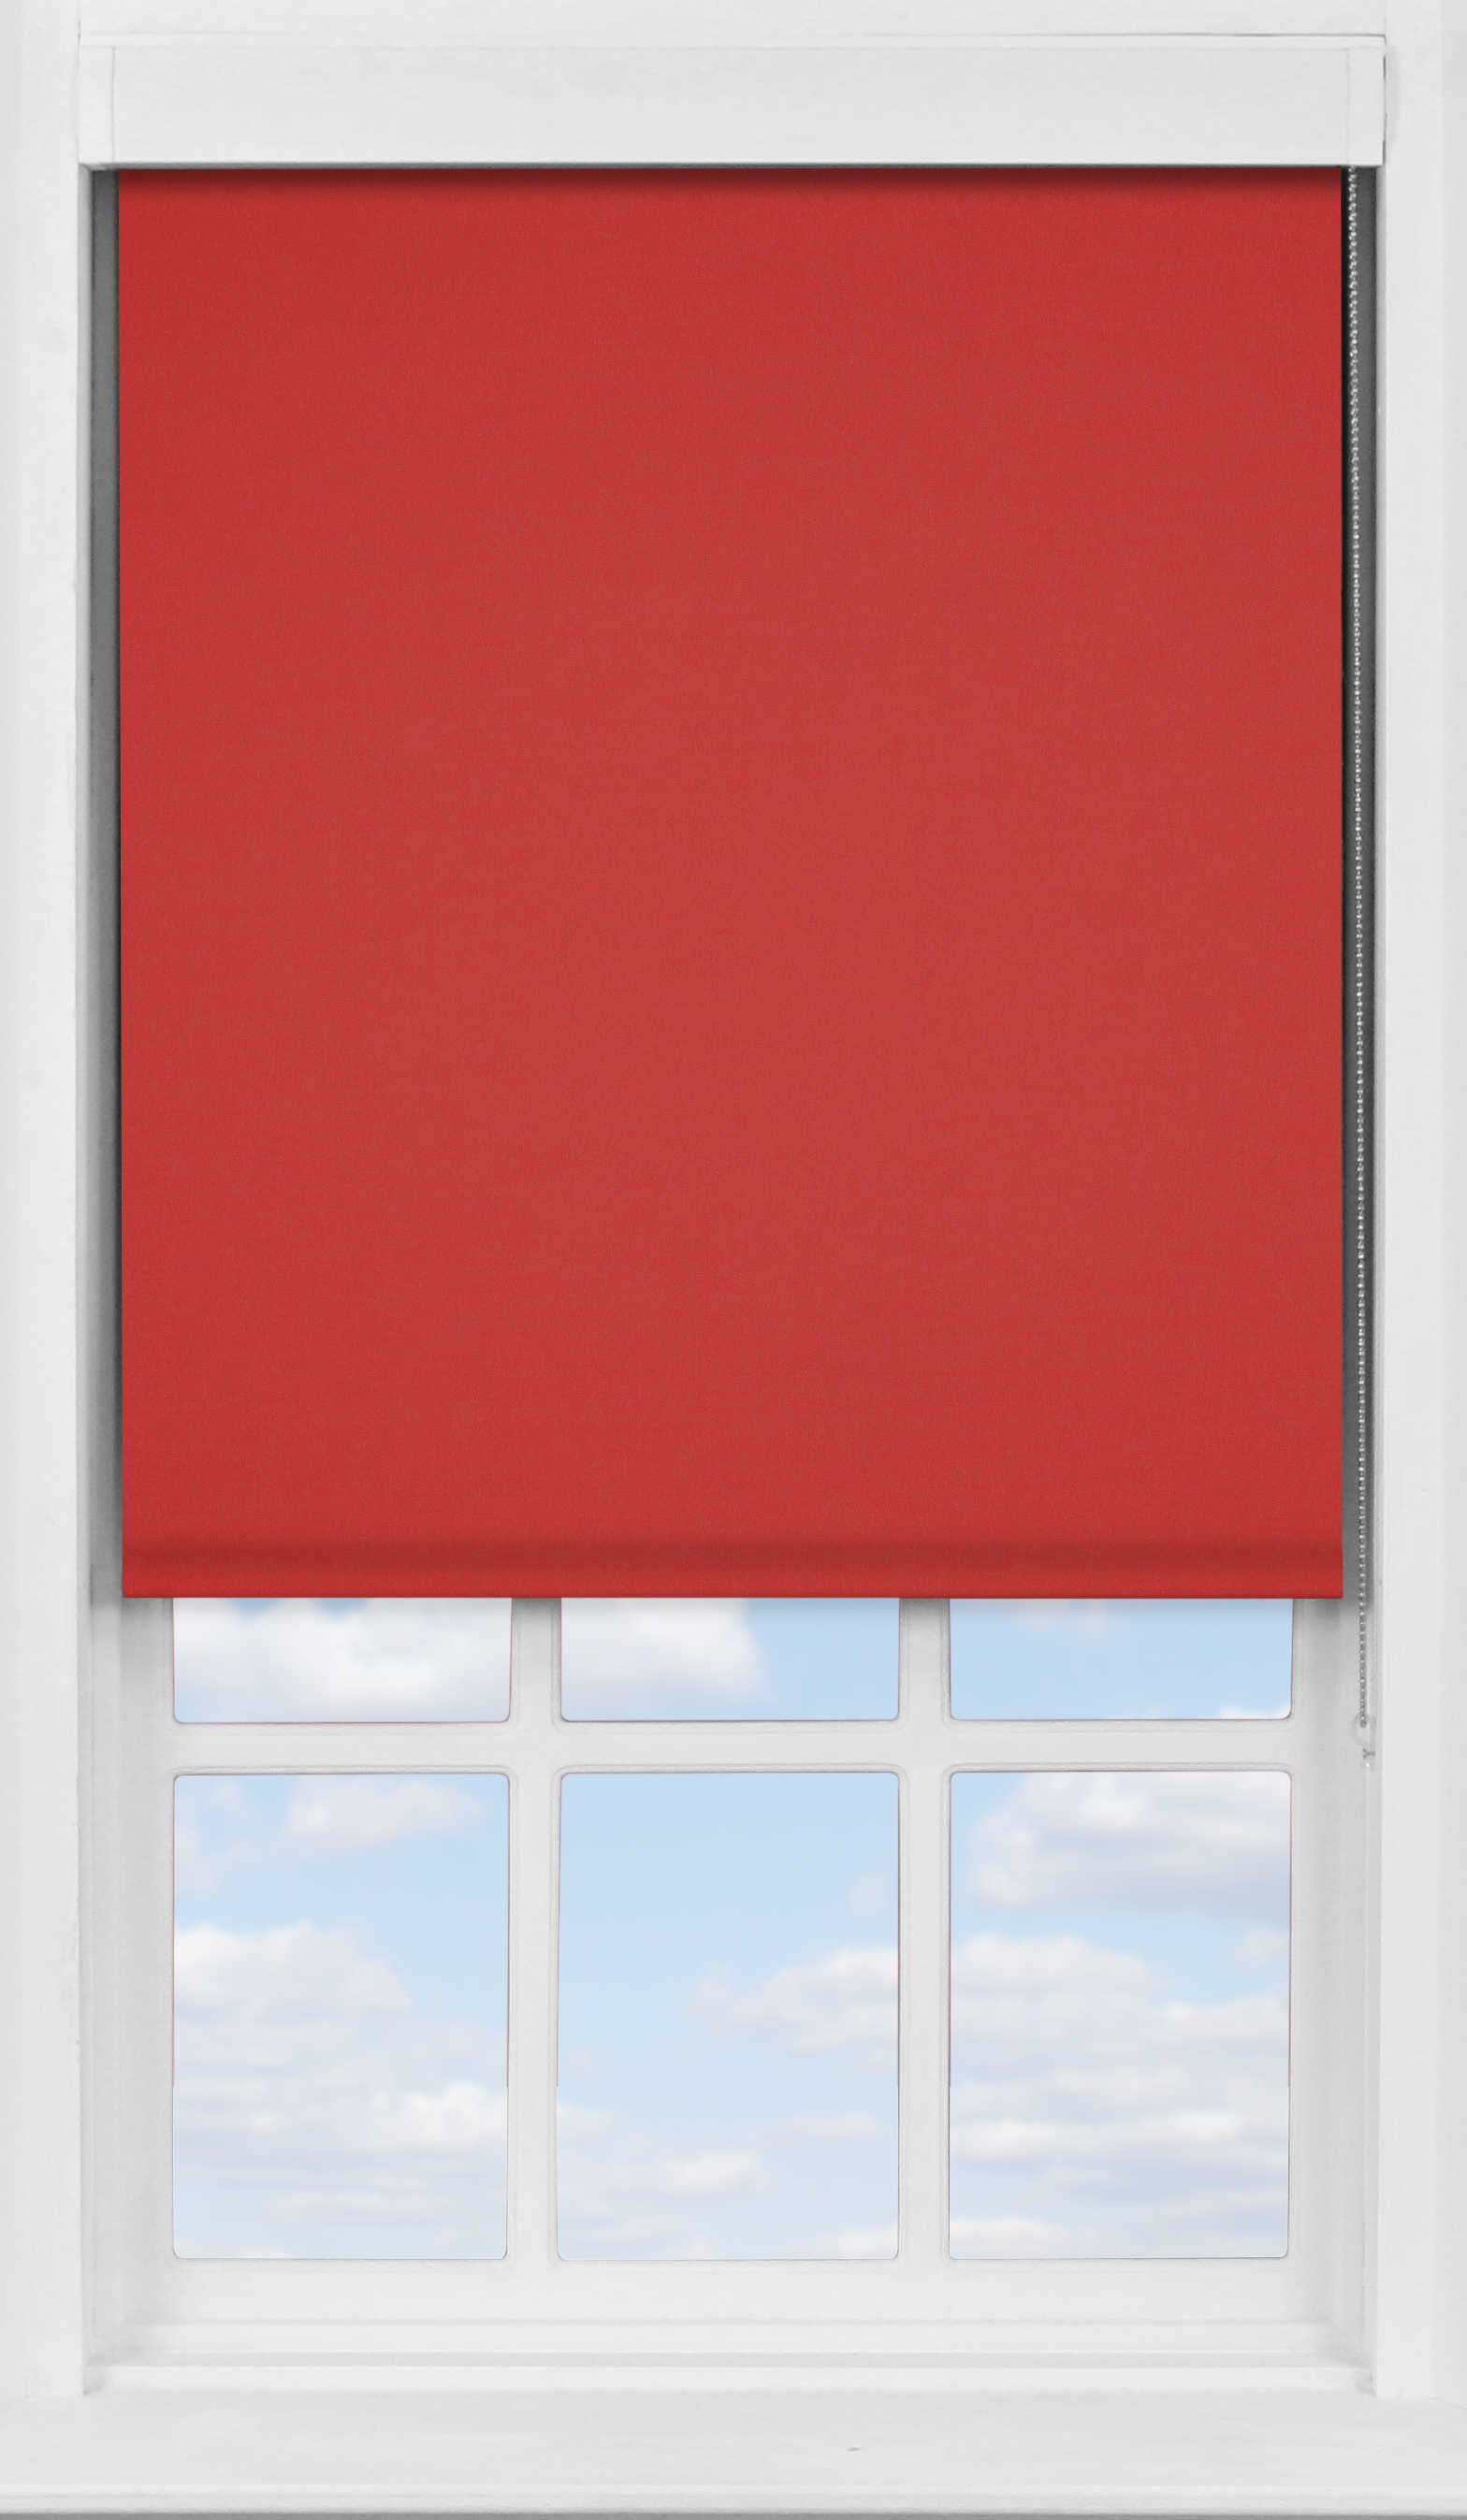 Premium Roller Blind in Soft Plum Translucent